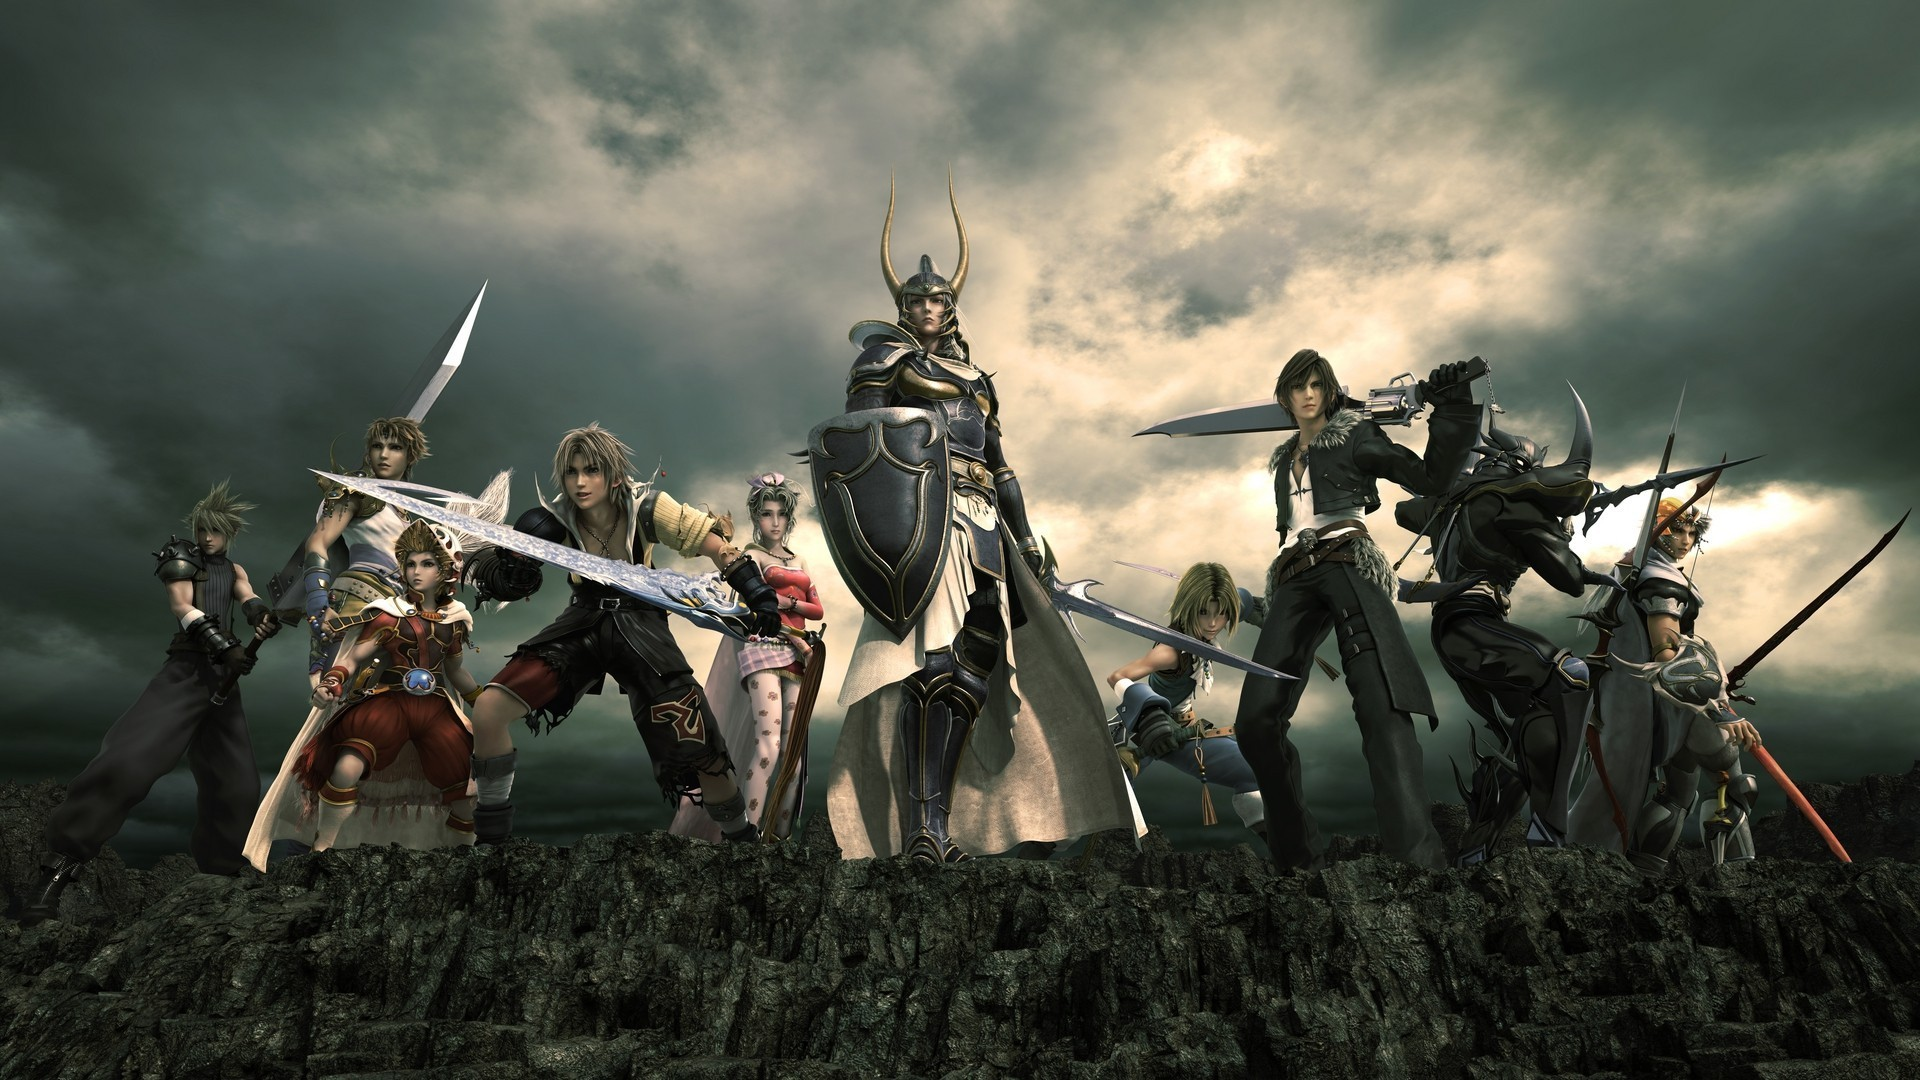 1920x1080 Wallpaper Final Fantasy Collection For Free Download